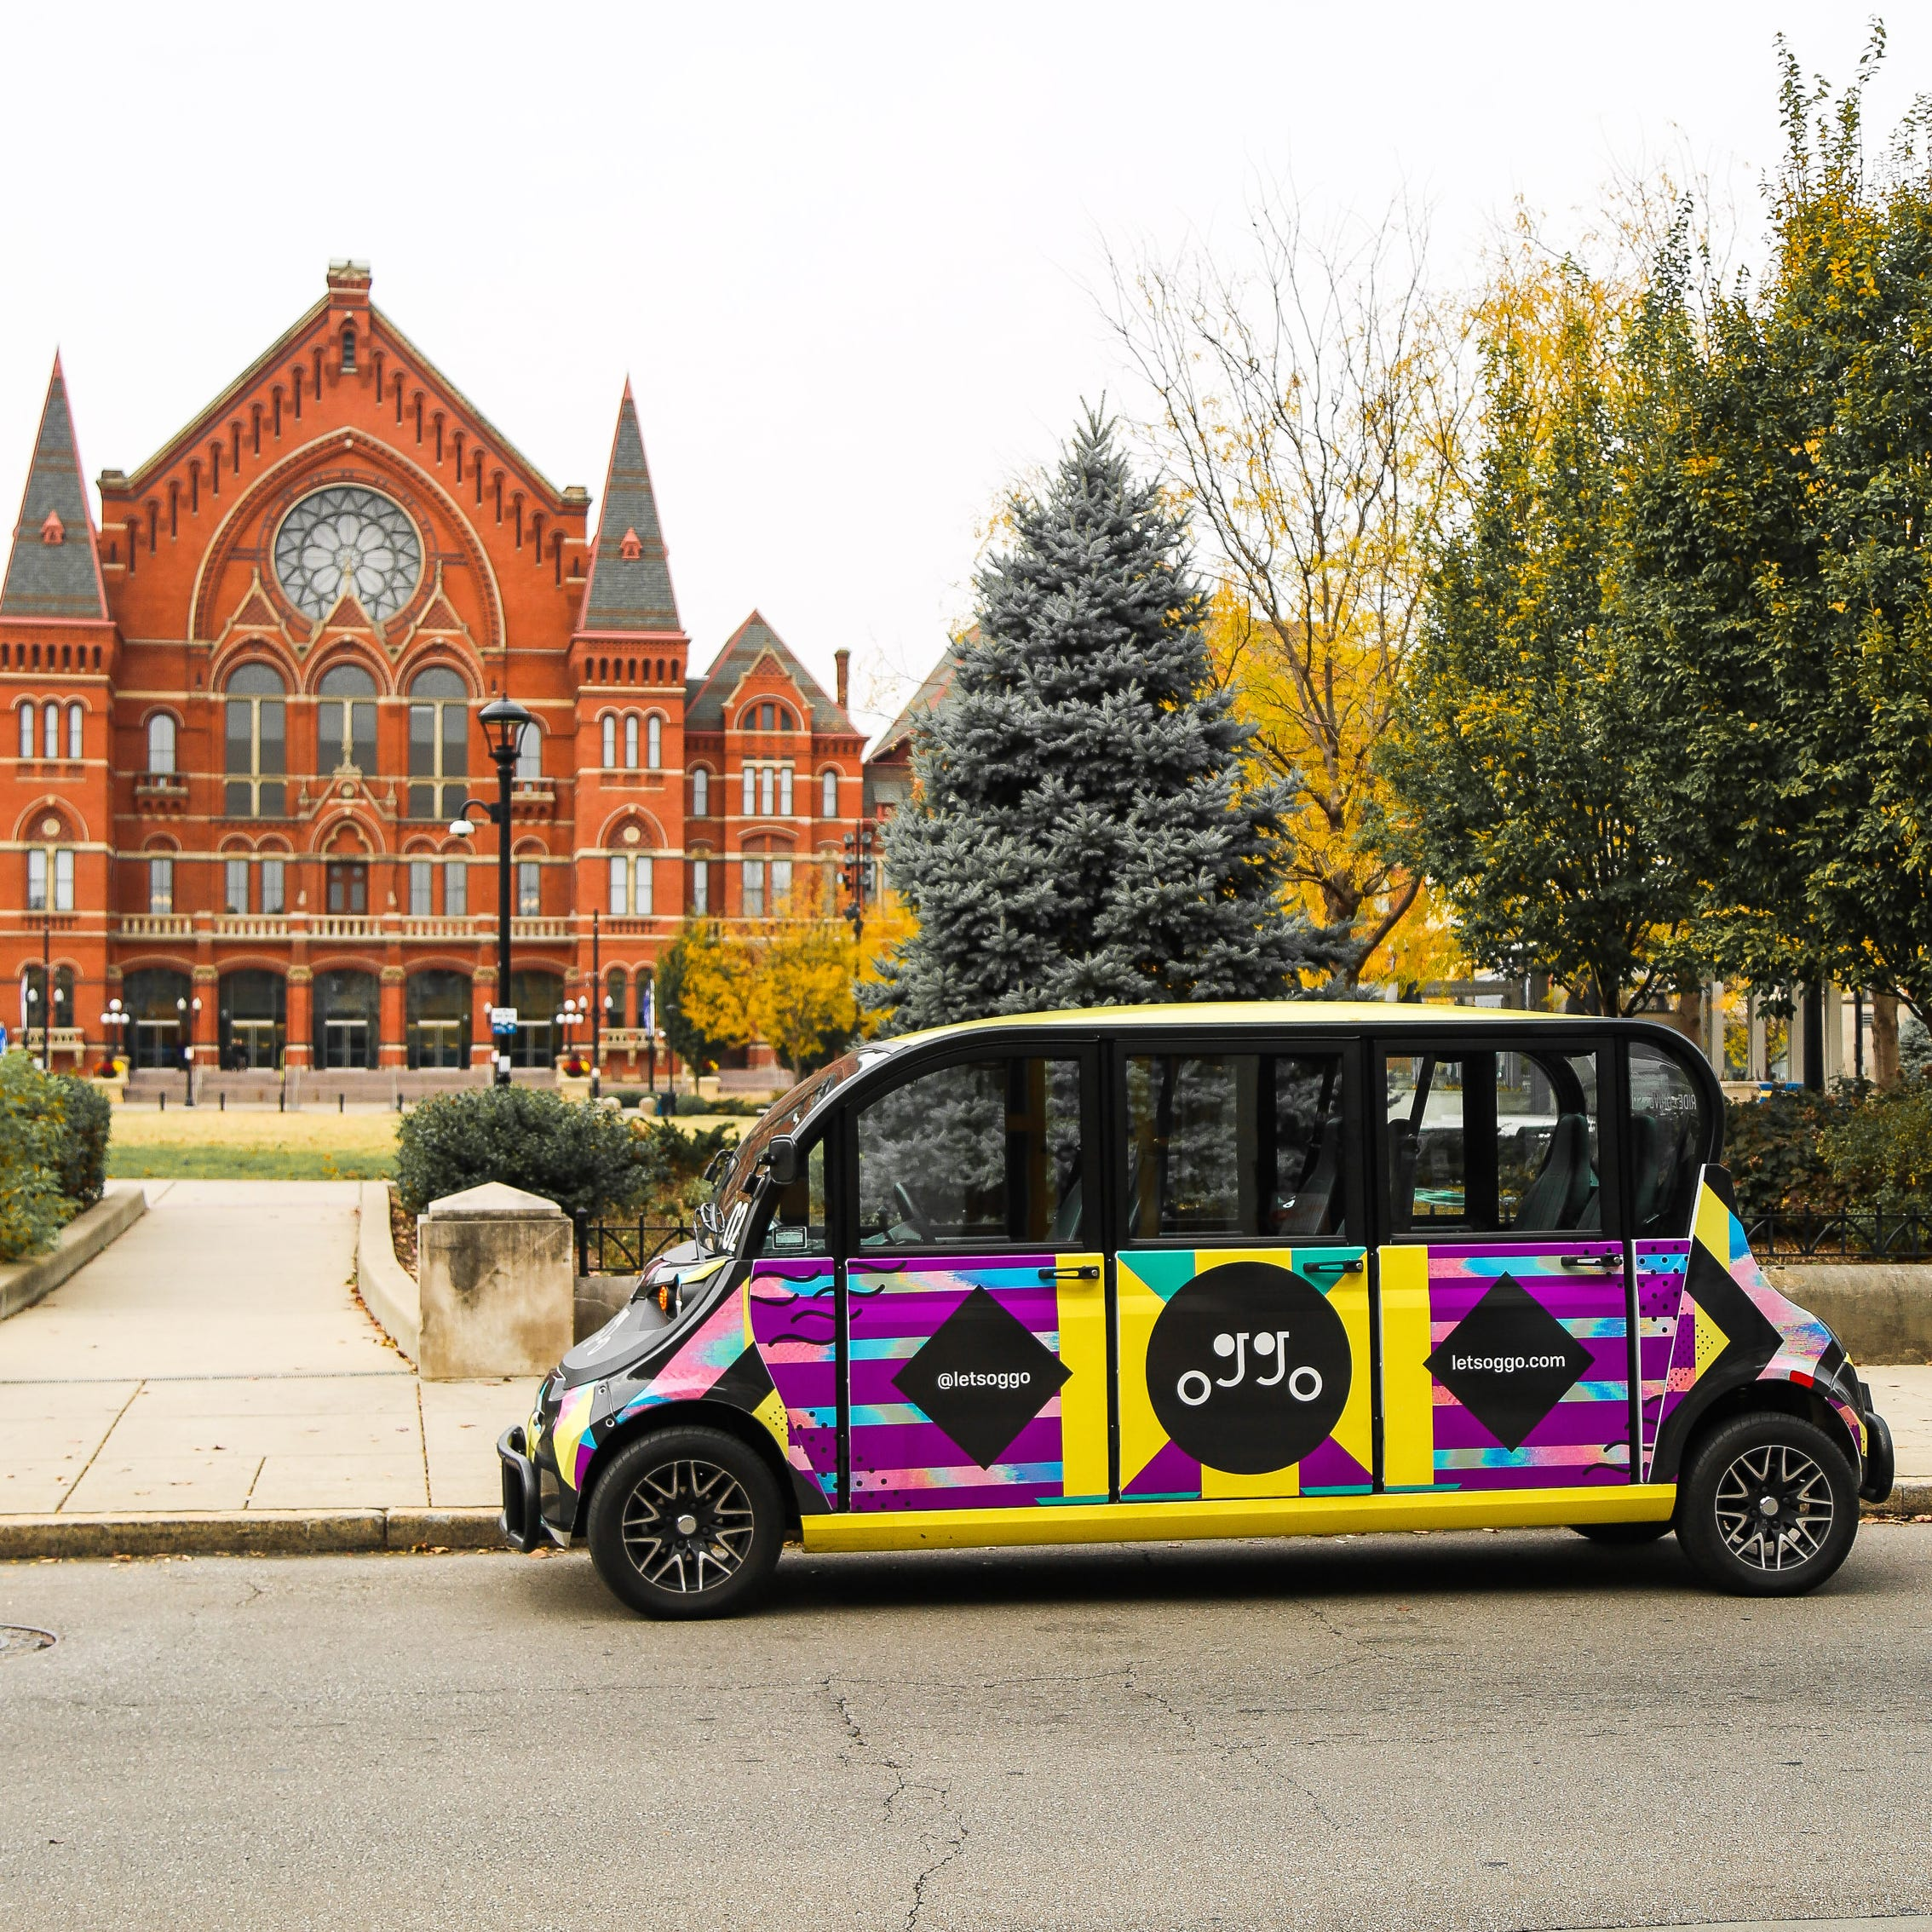 What's an Oggo? One more transportation option in Cincinnati.